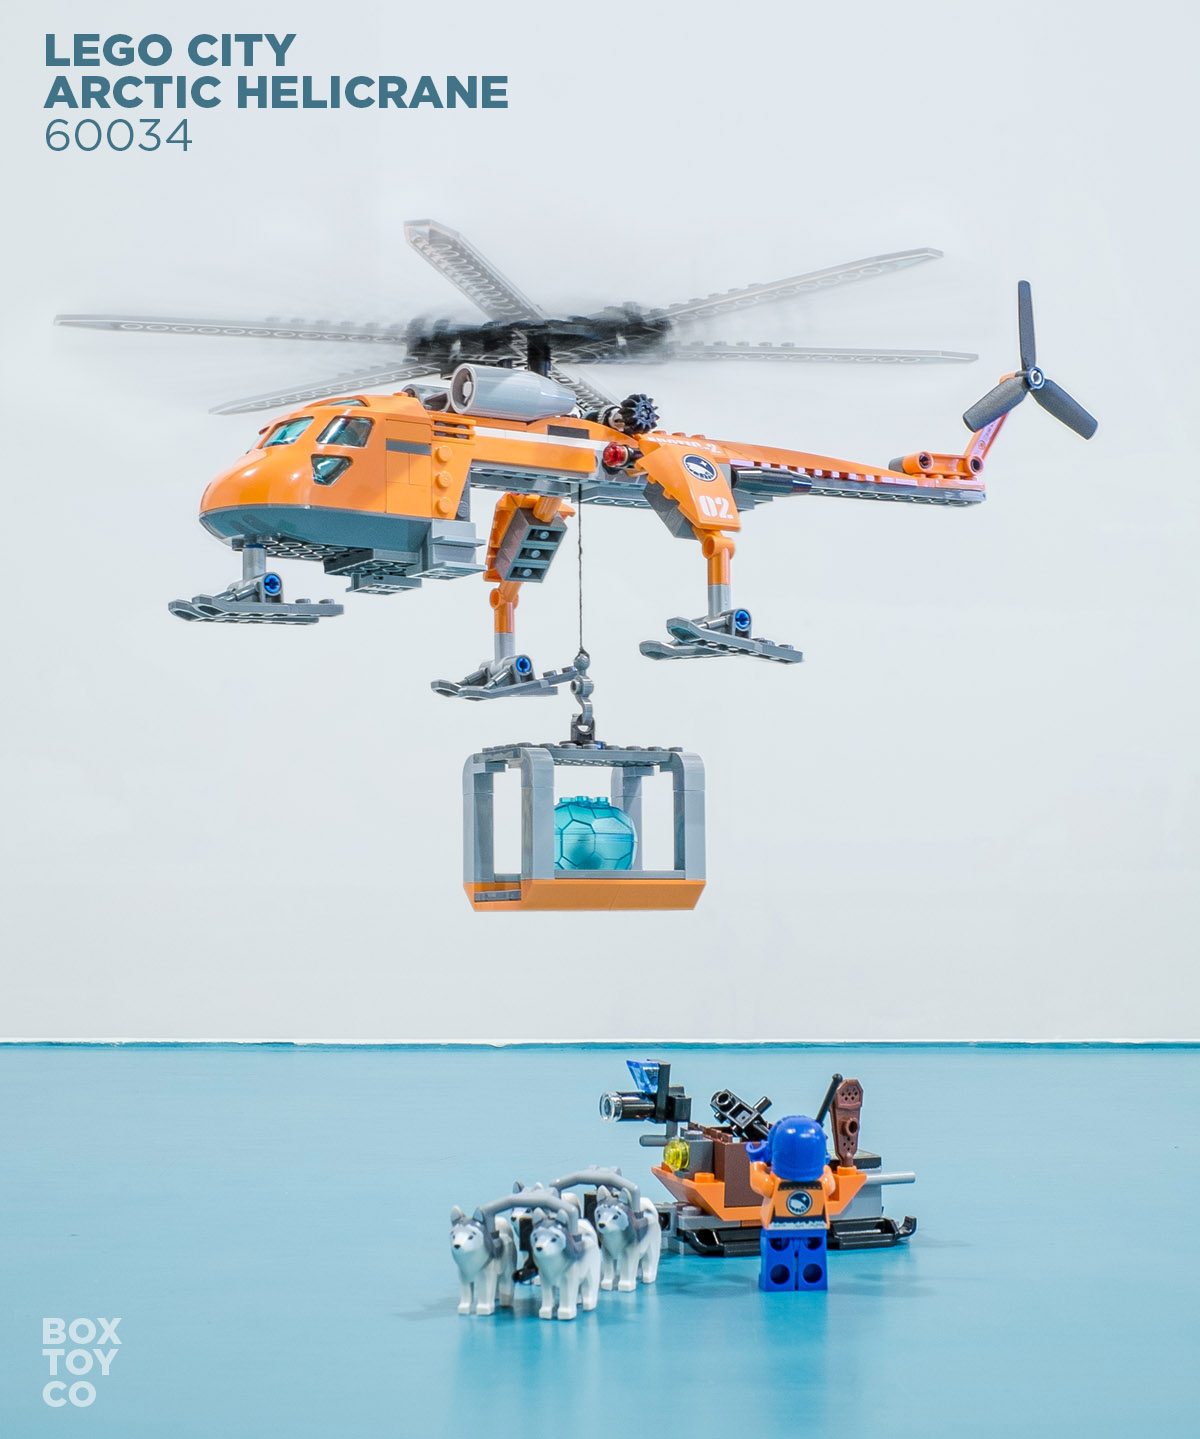 A regular day for the lego arctic helicrane 60034 team